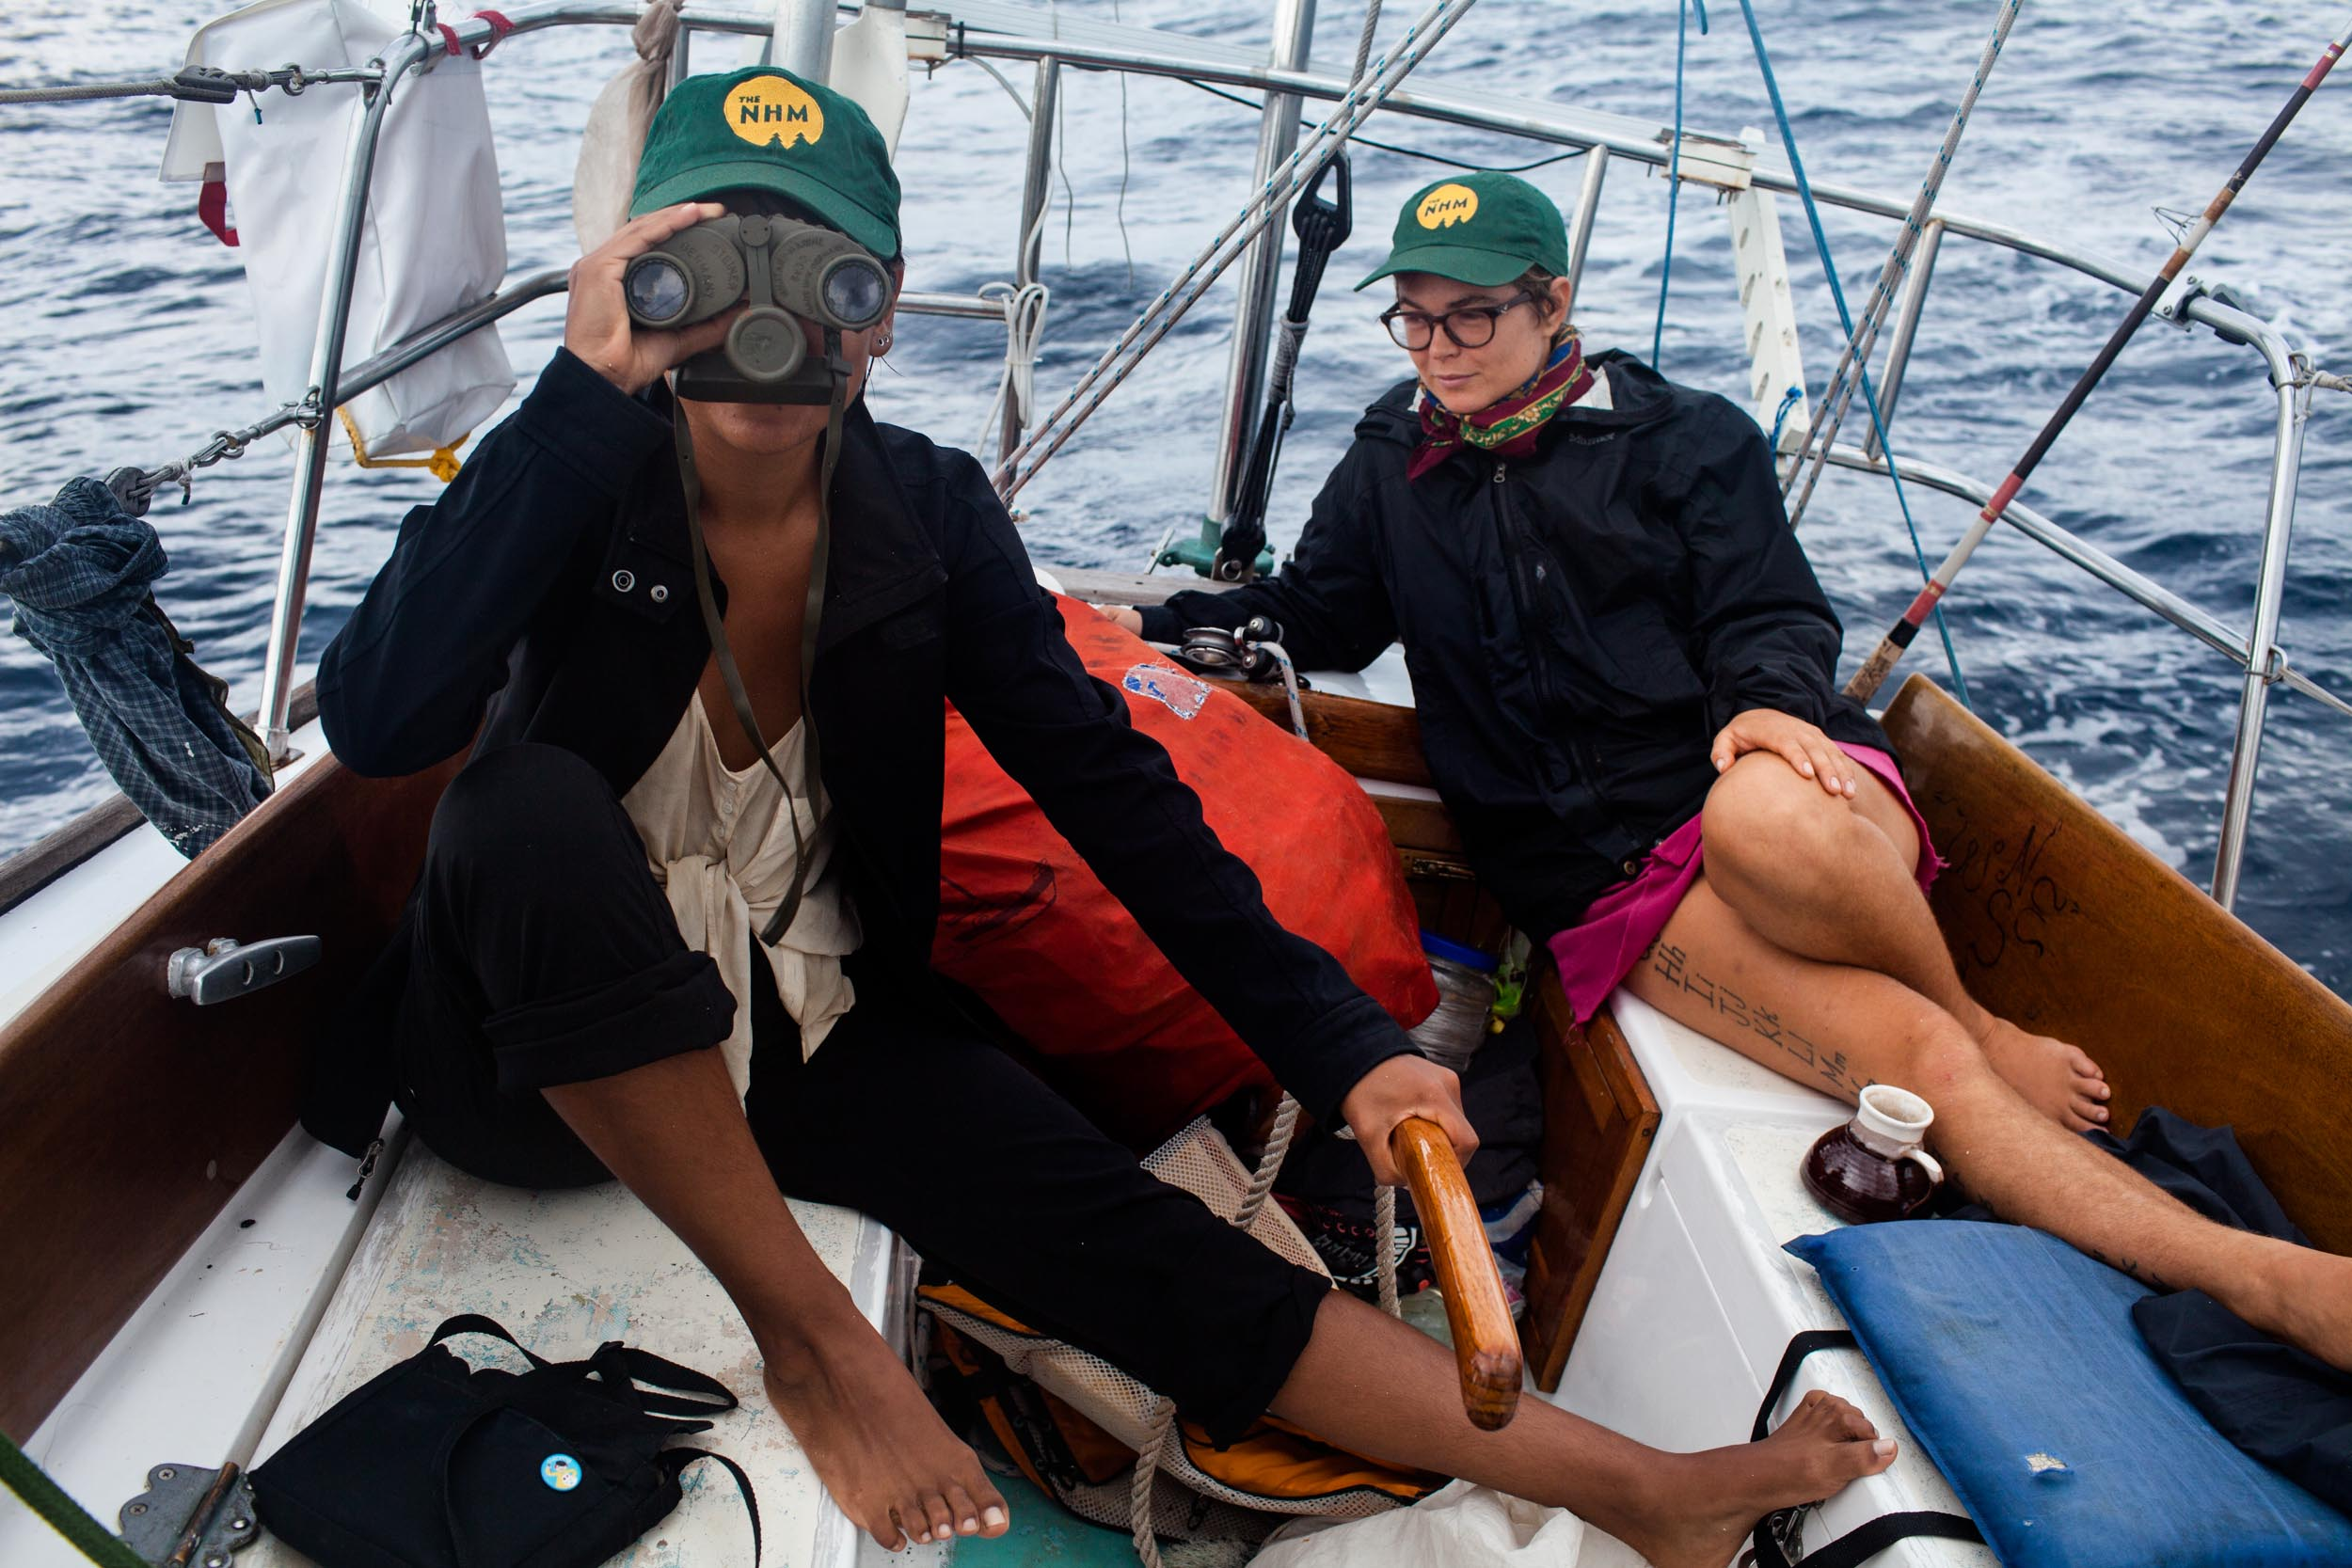 Mon leading a 2014 NHM expedition traveling down the east coast of the US and across the Gulf of Mexico with the TellTales Sailing Collective.